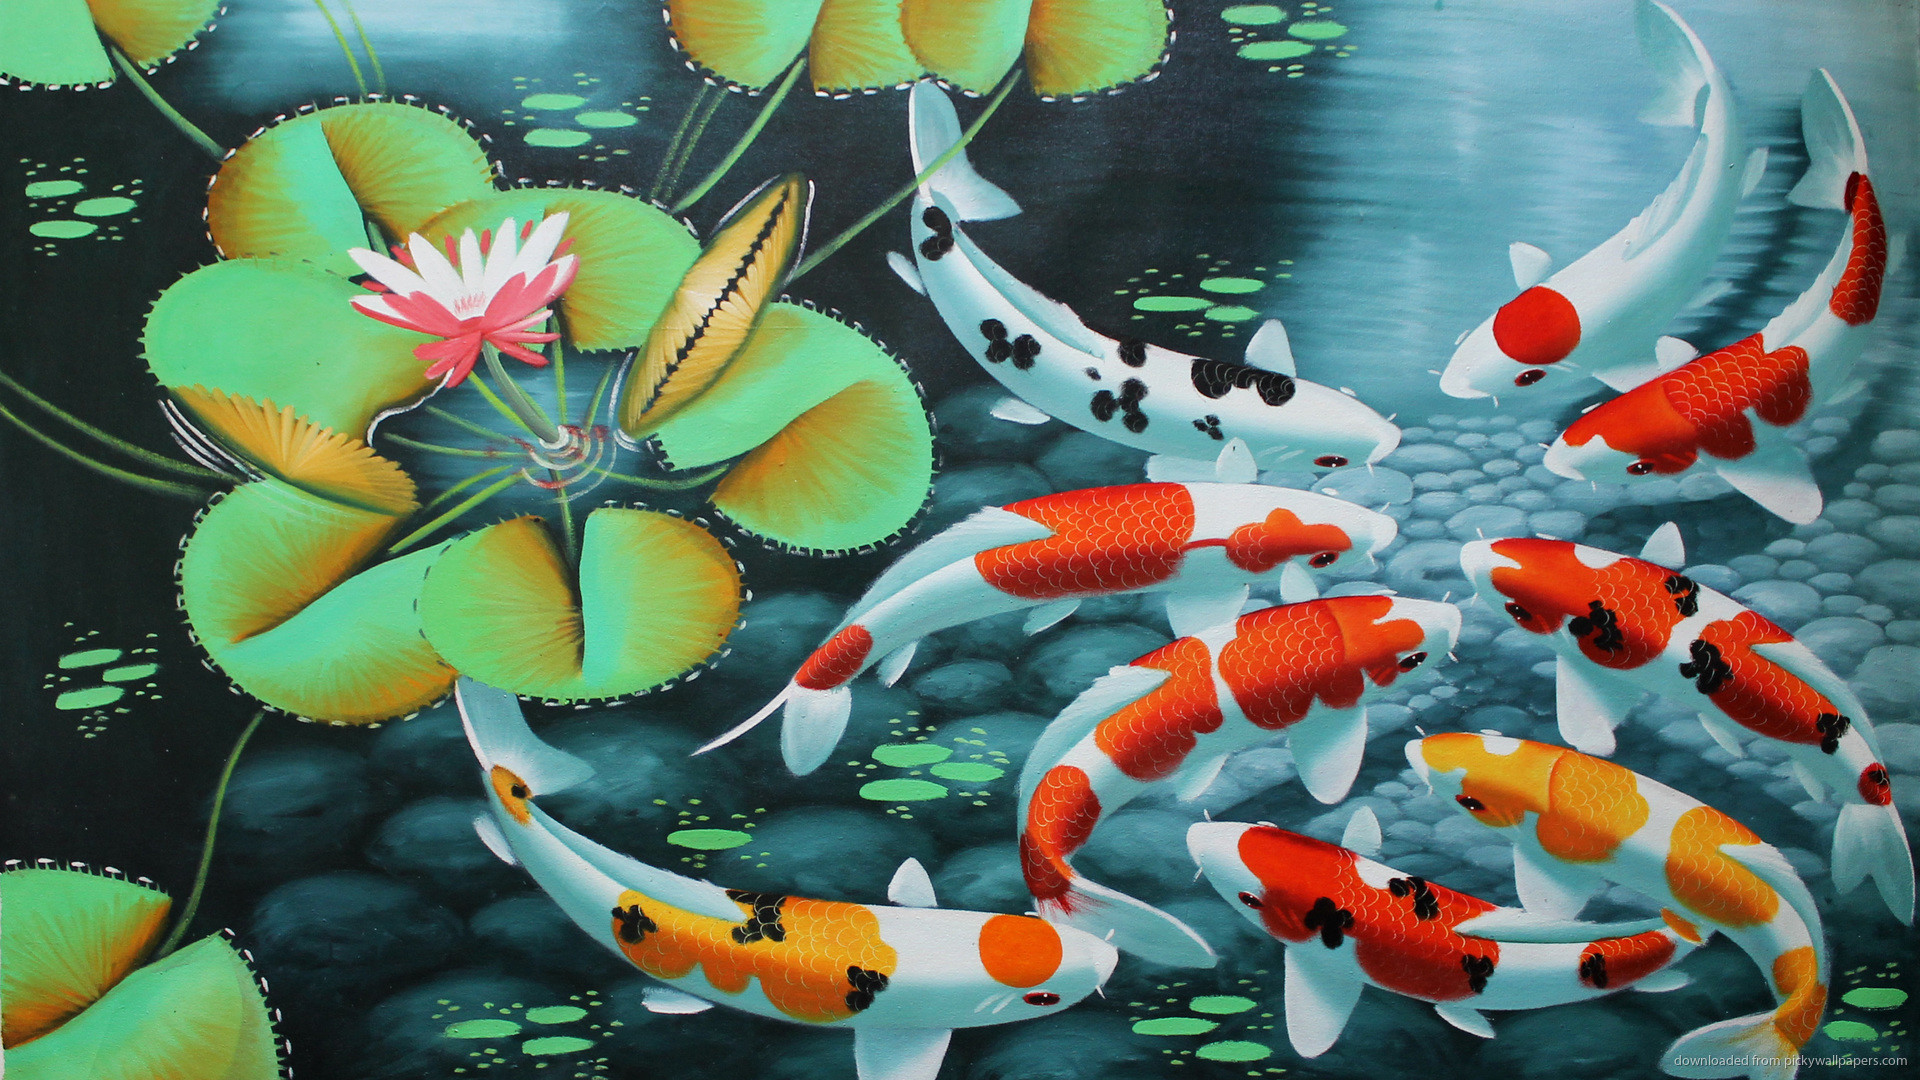 Koi fish wallpapers for Koi fish background